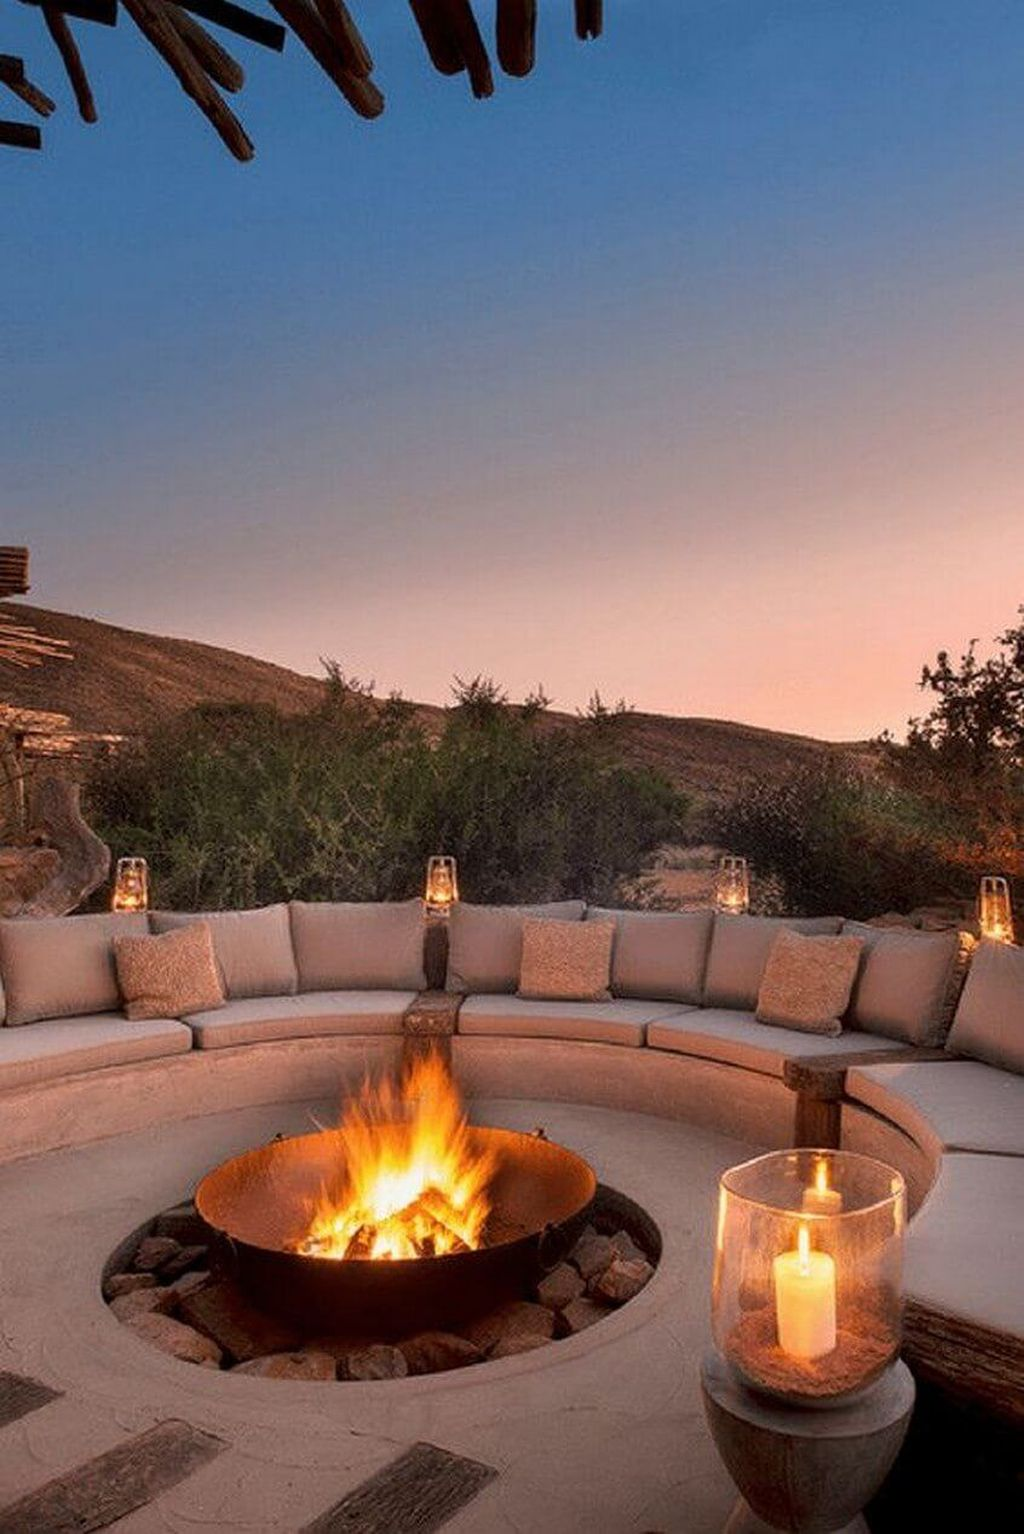 Amazing Fire Pit Design Ideas For Your Backyard Decor 07